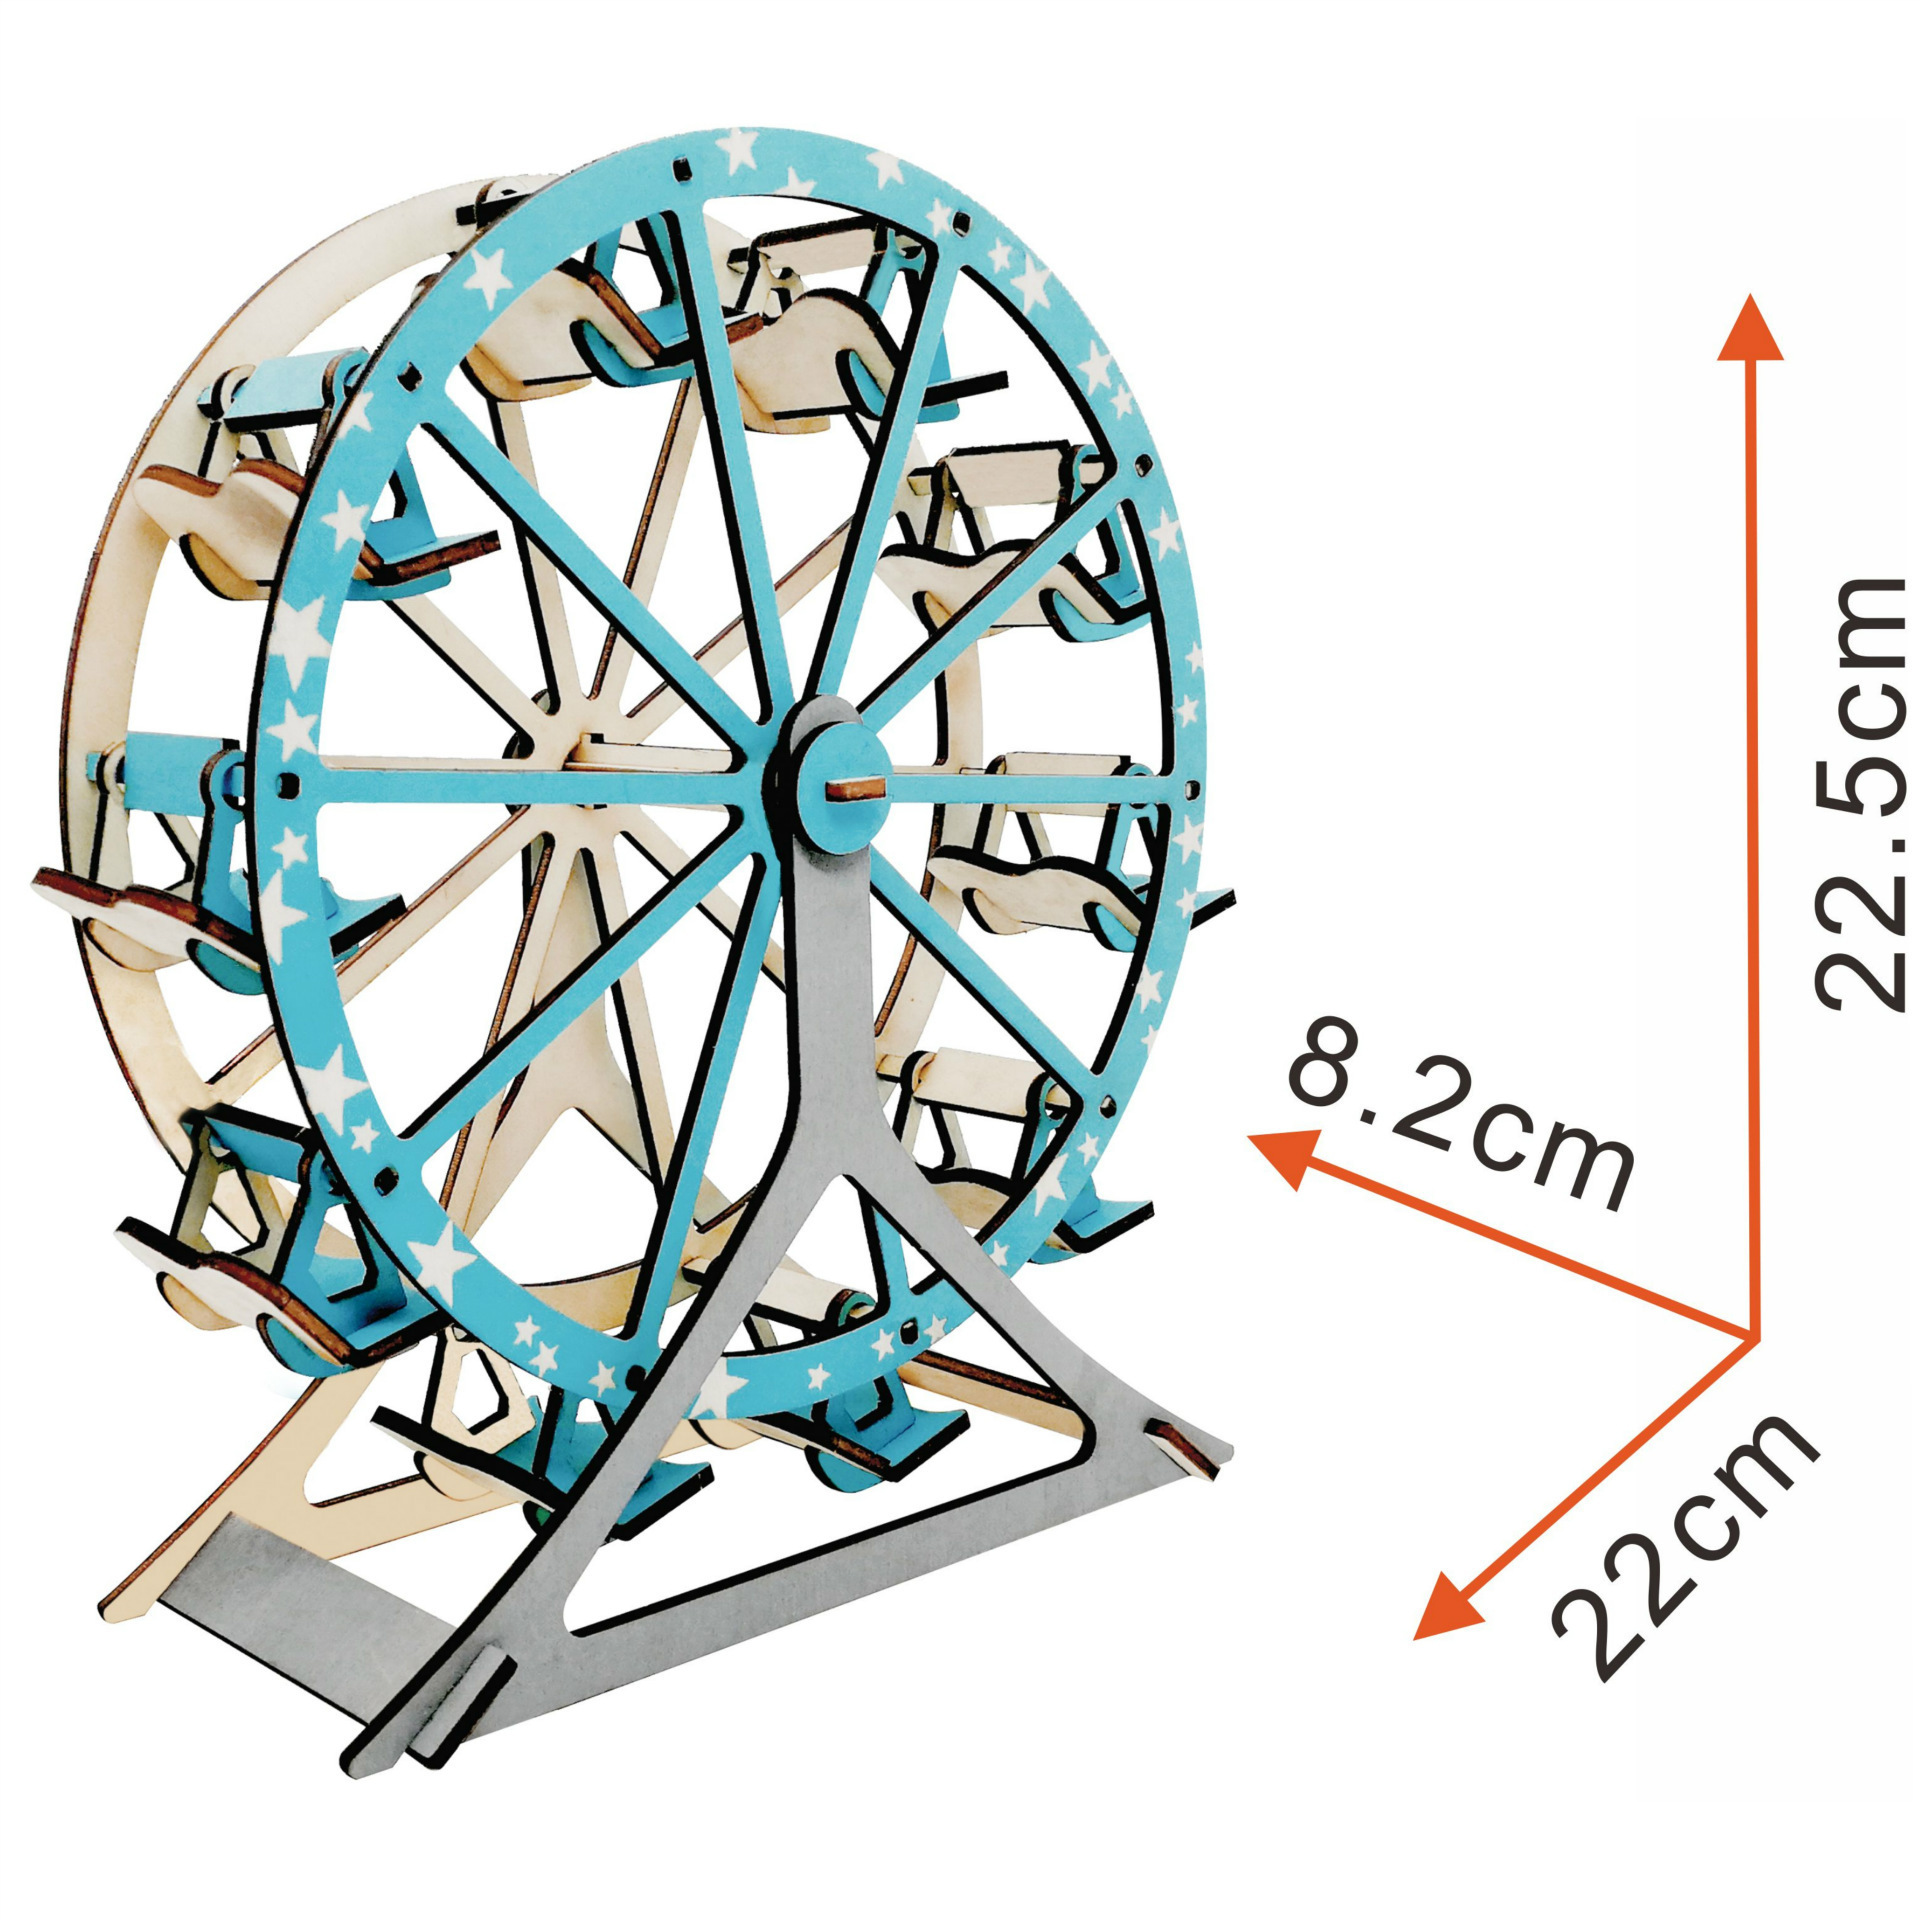 PZ-041 Solar 3D Wooden Puzzle for Teens and Adults,Ferris Wheel,DIY Model Kit